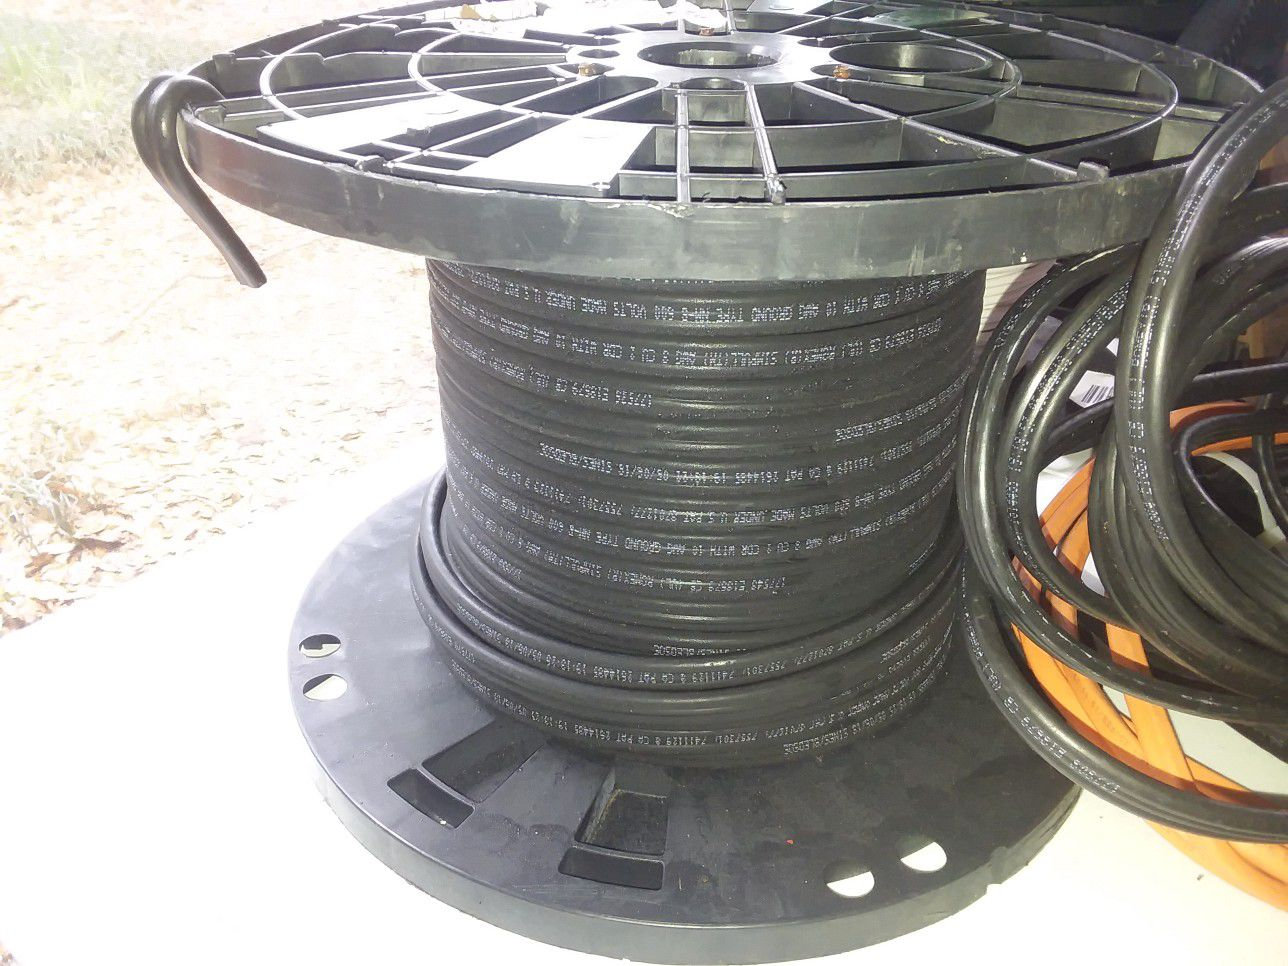 6 gauge singles and 8/2 wire